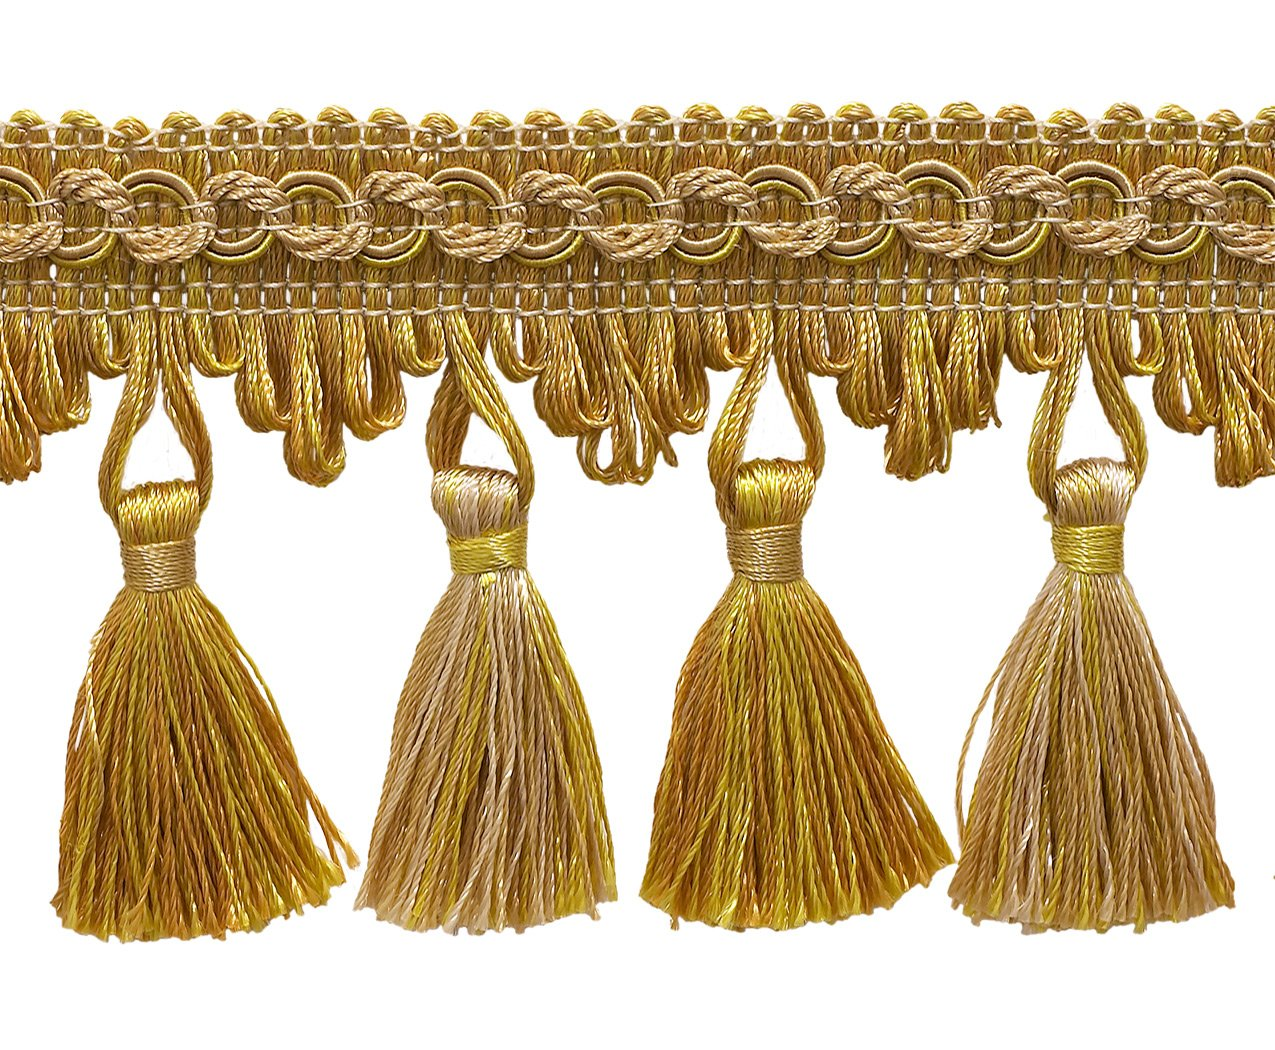 5 Yard Value Pack of Antique gold 2 3/4 Imperial IITassel Fringe Style# NT2502 Color: RUSTIC GOLD - 4975 (15 Ft / 4.5 Meters) DecoPro